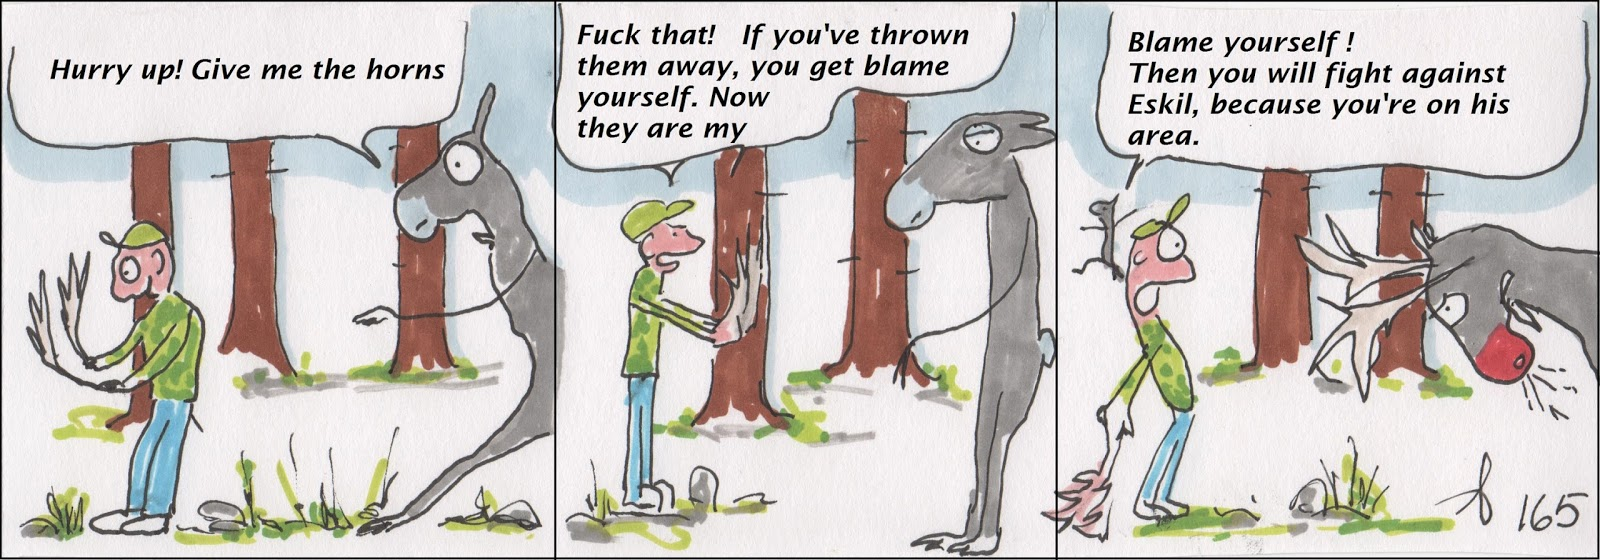 Free Cartoons, free art, for websites, newsletters, blogs